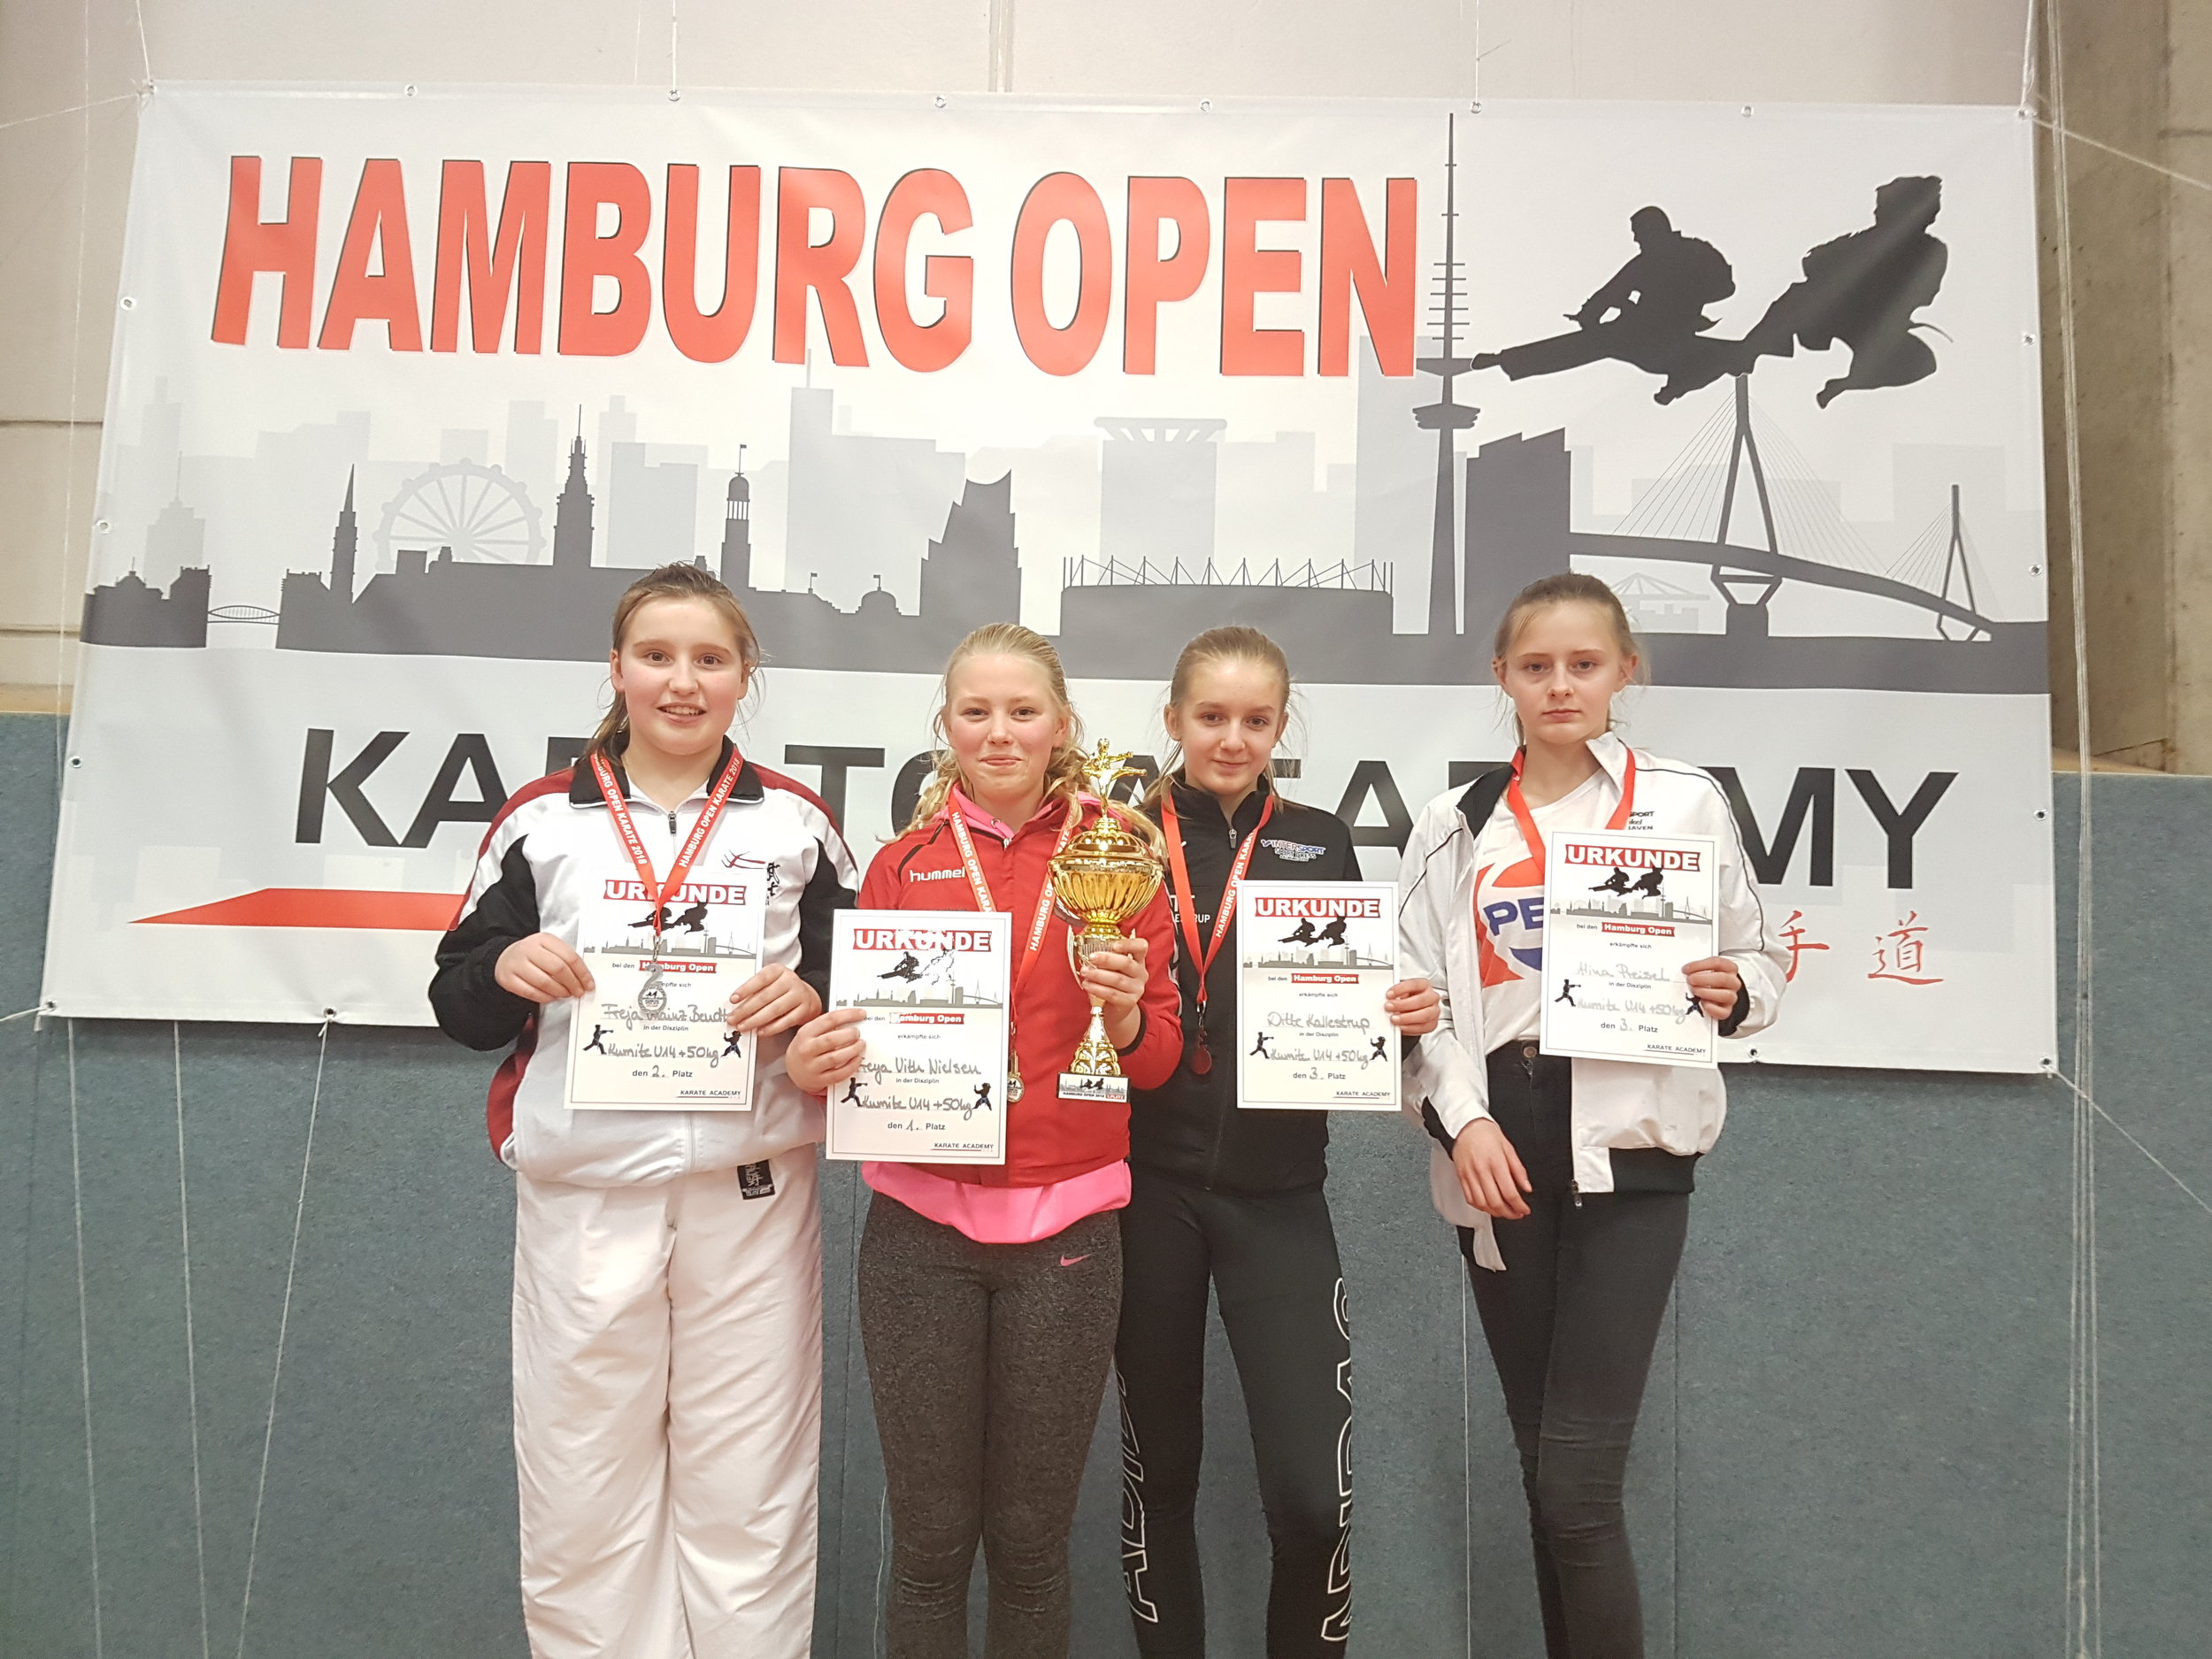 Hamburg Karate Open 2018 Freya.jpg